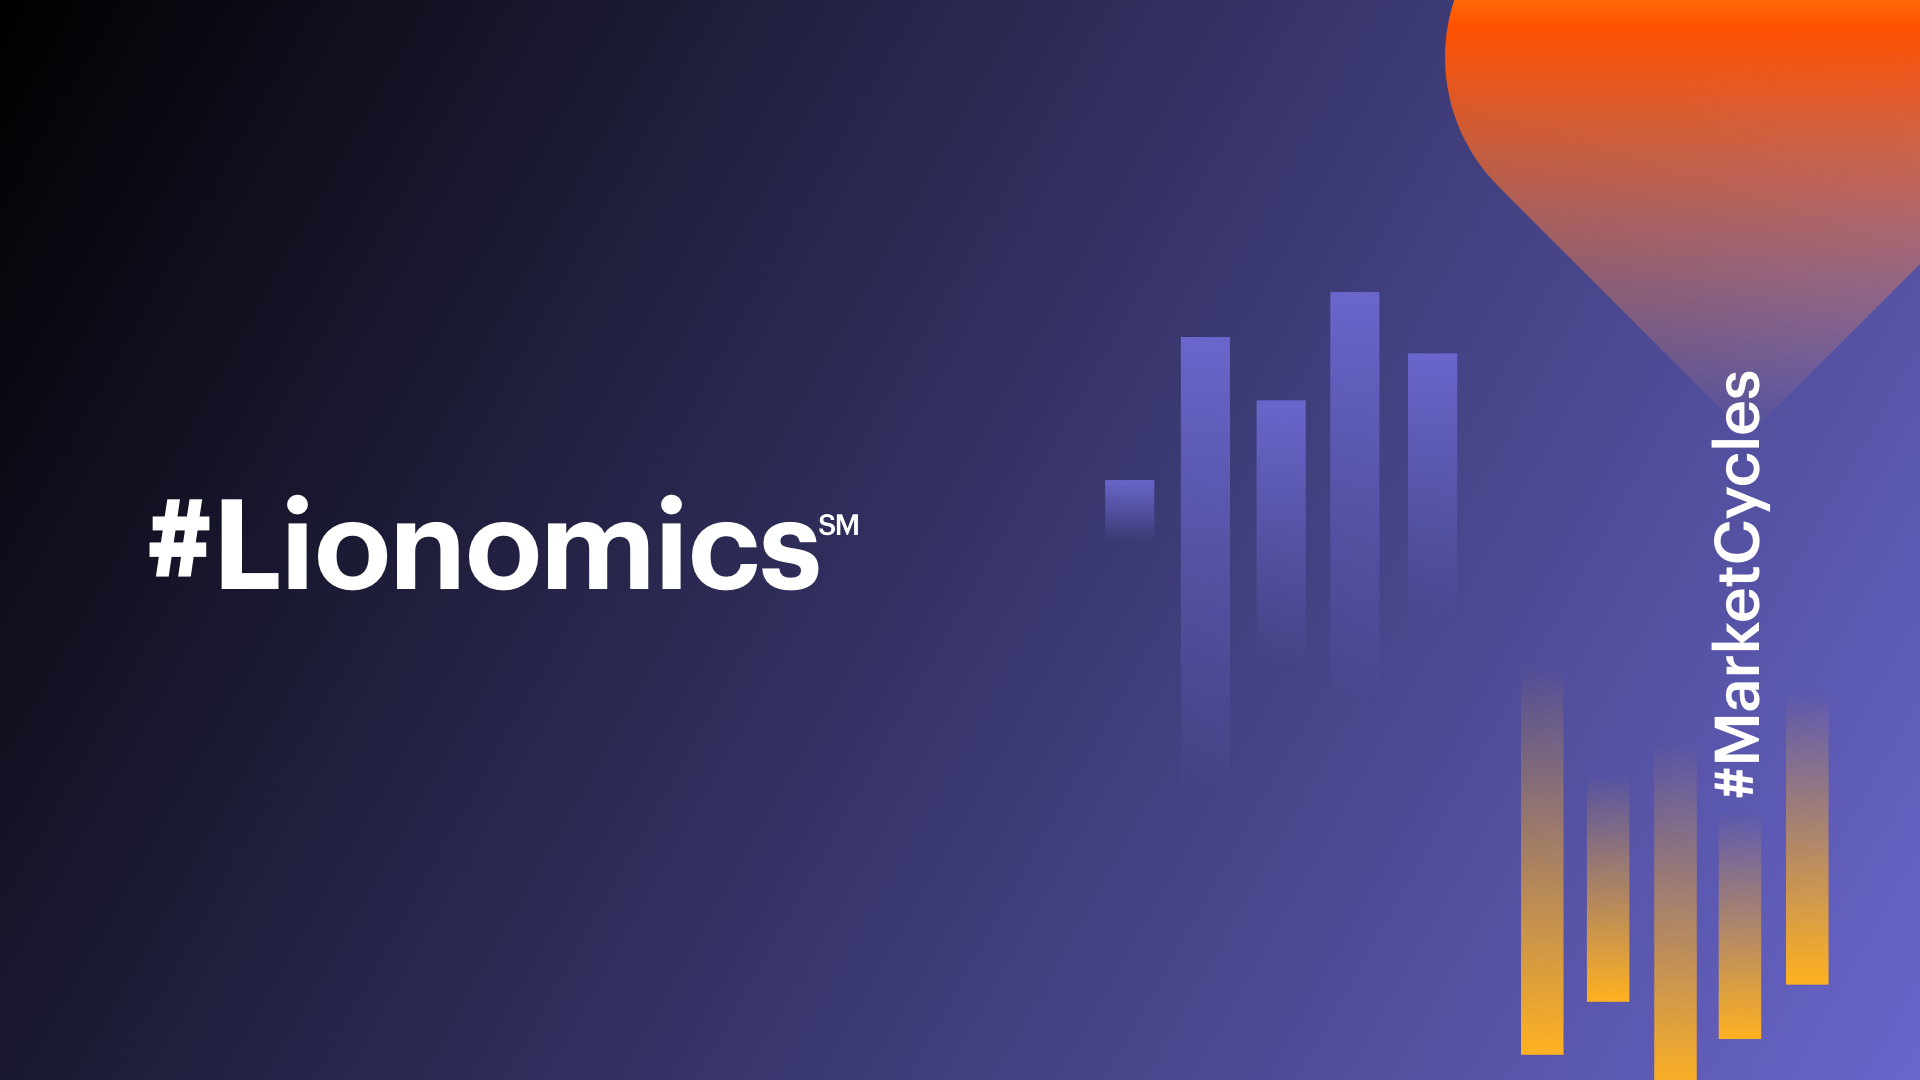 Lionomics 40 Blog MarketCycles 11142018